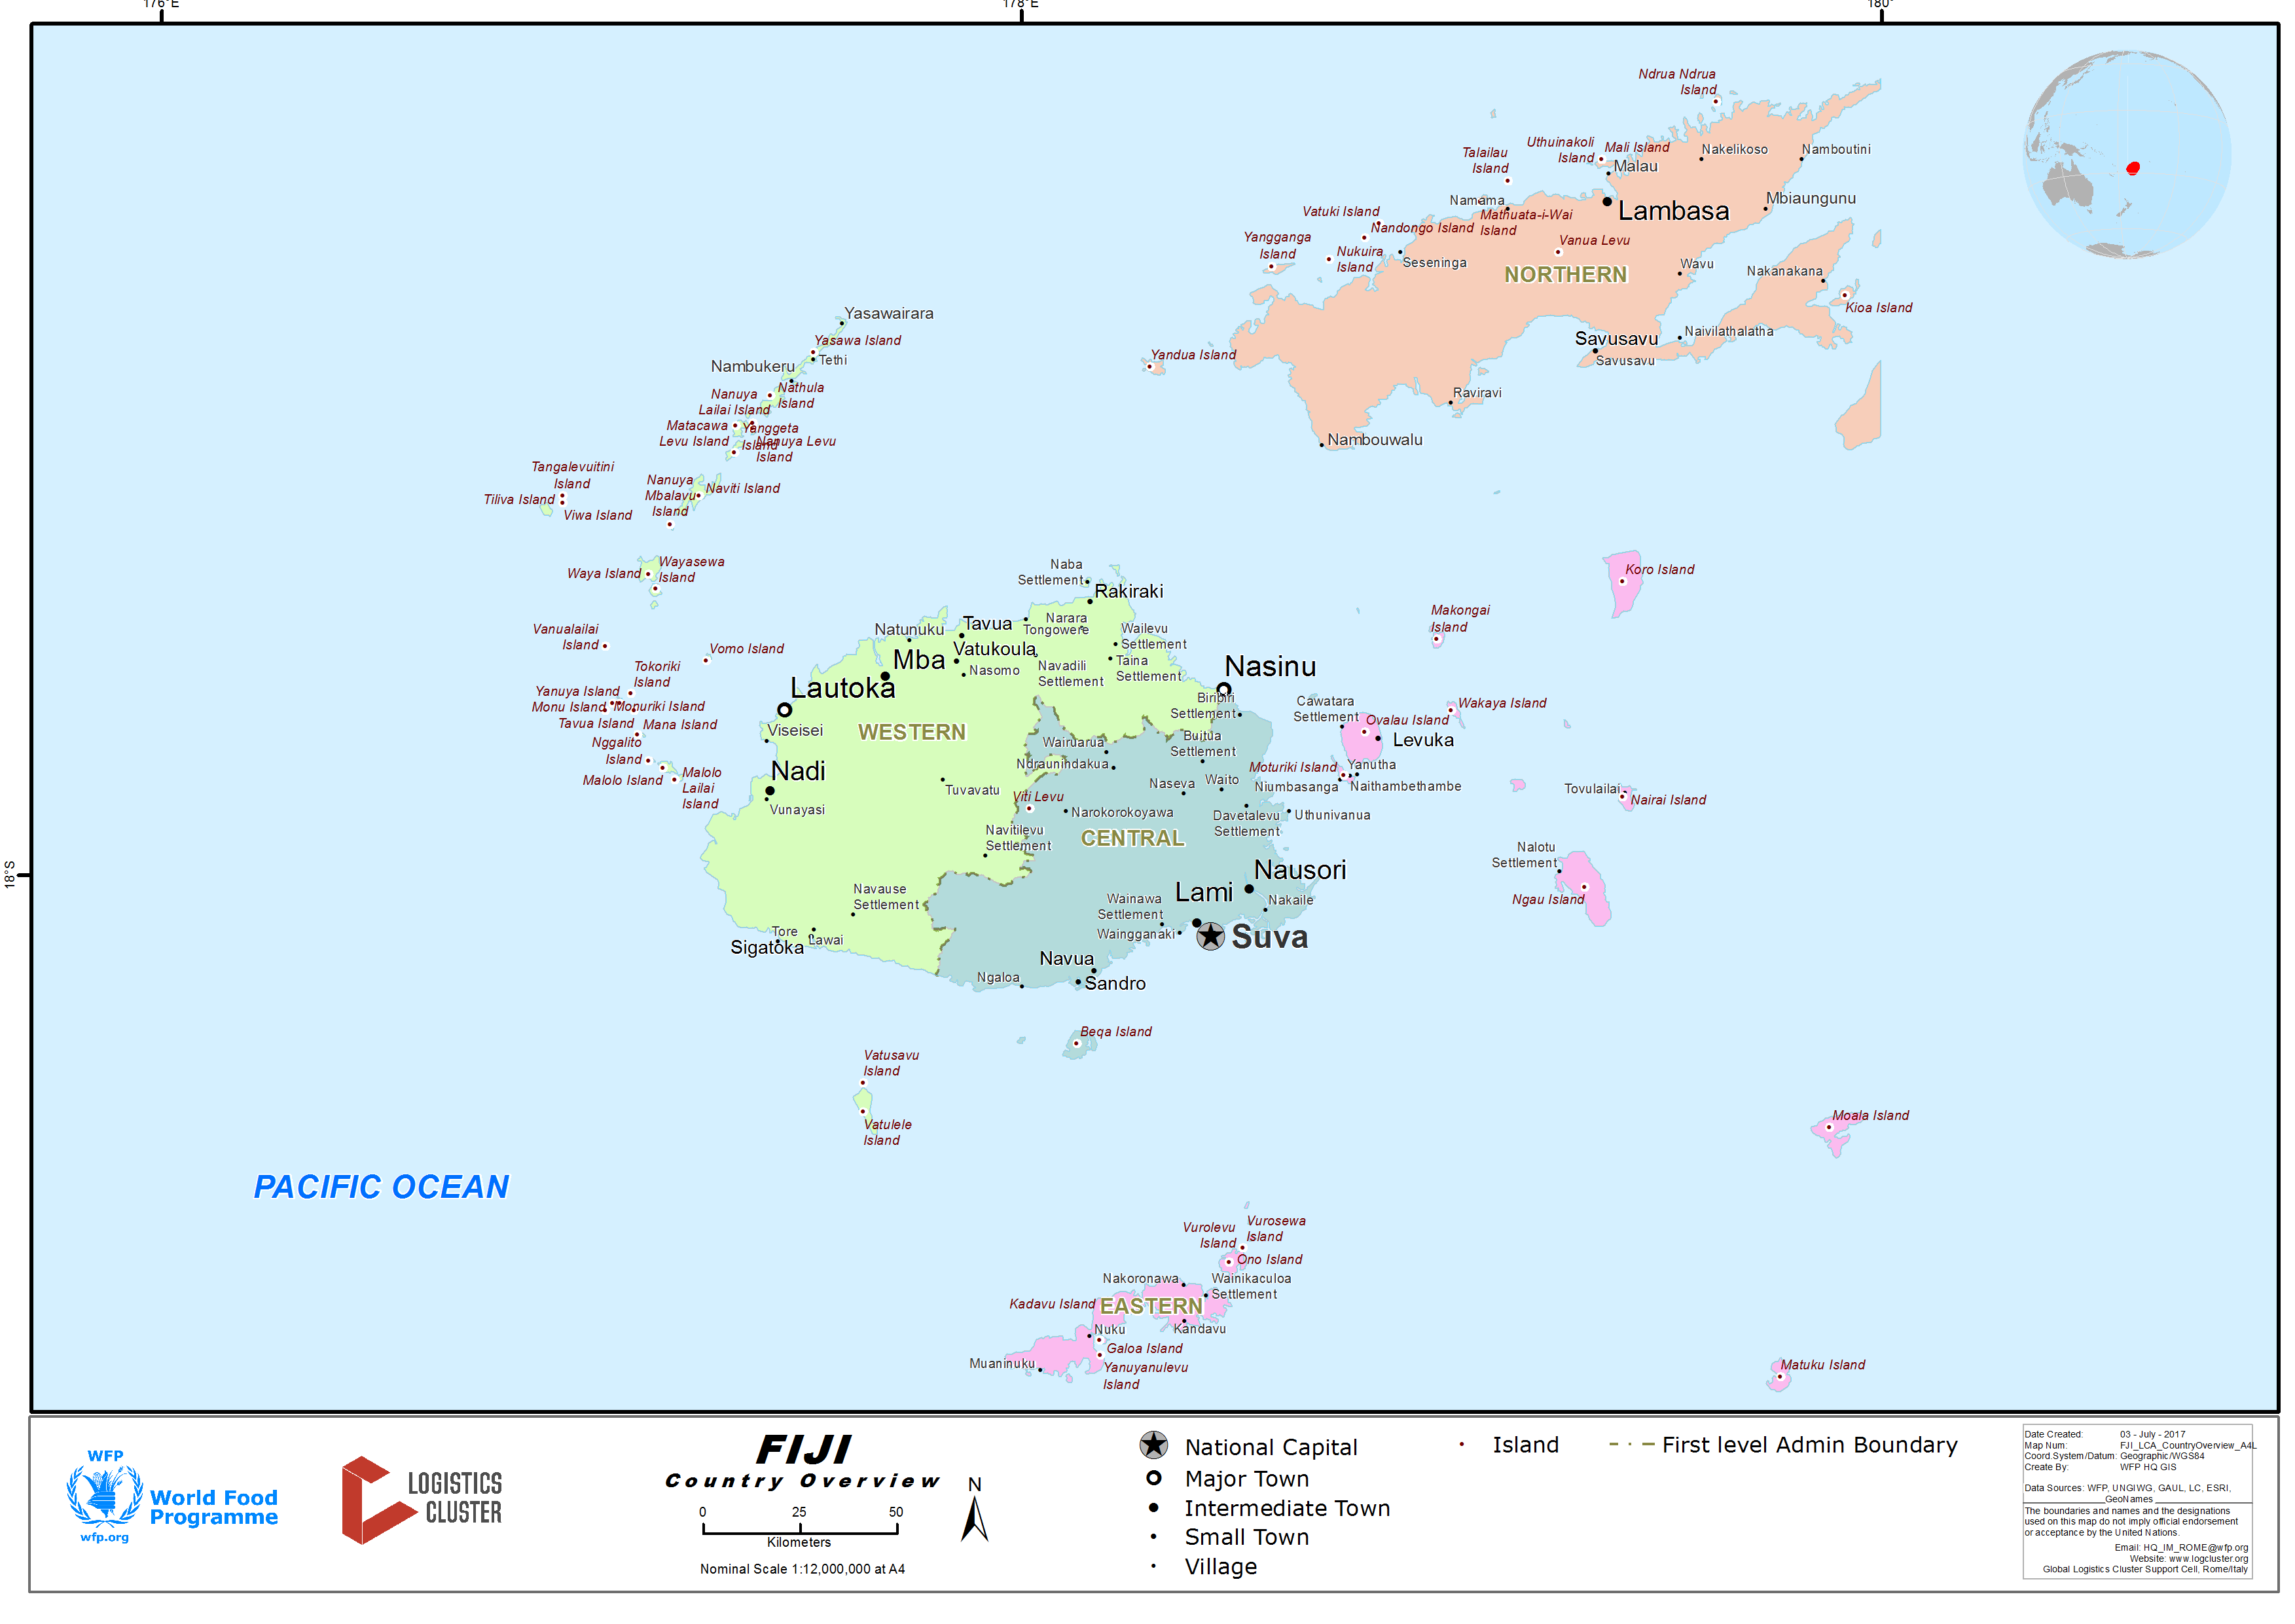 1 fiji country profile logistics capacity assessment digital fiji country profile gumiabroncs Gallery